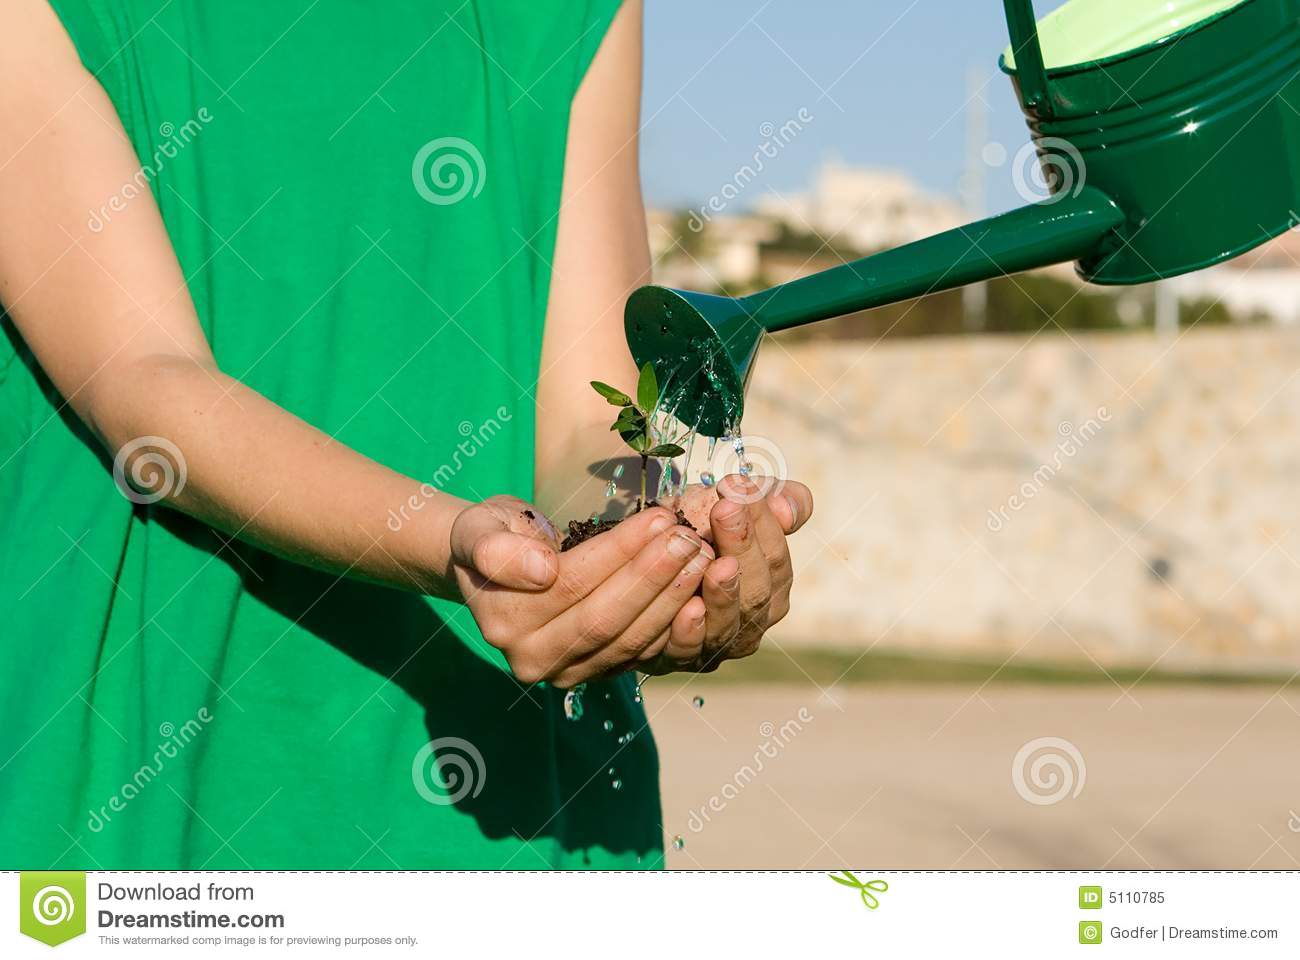 Child watering plant in cupped hand